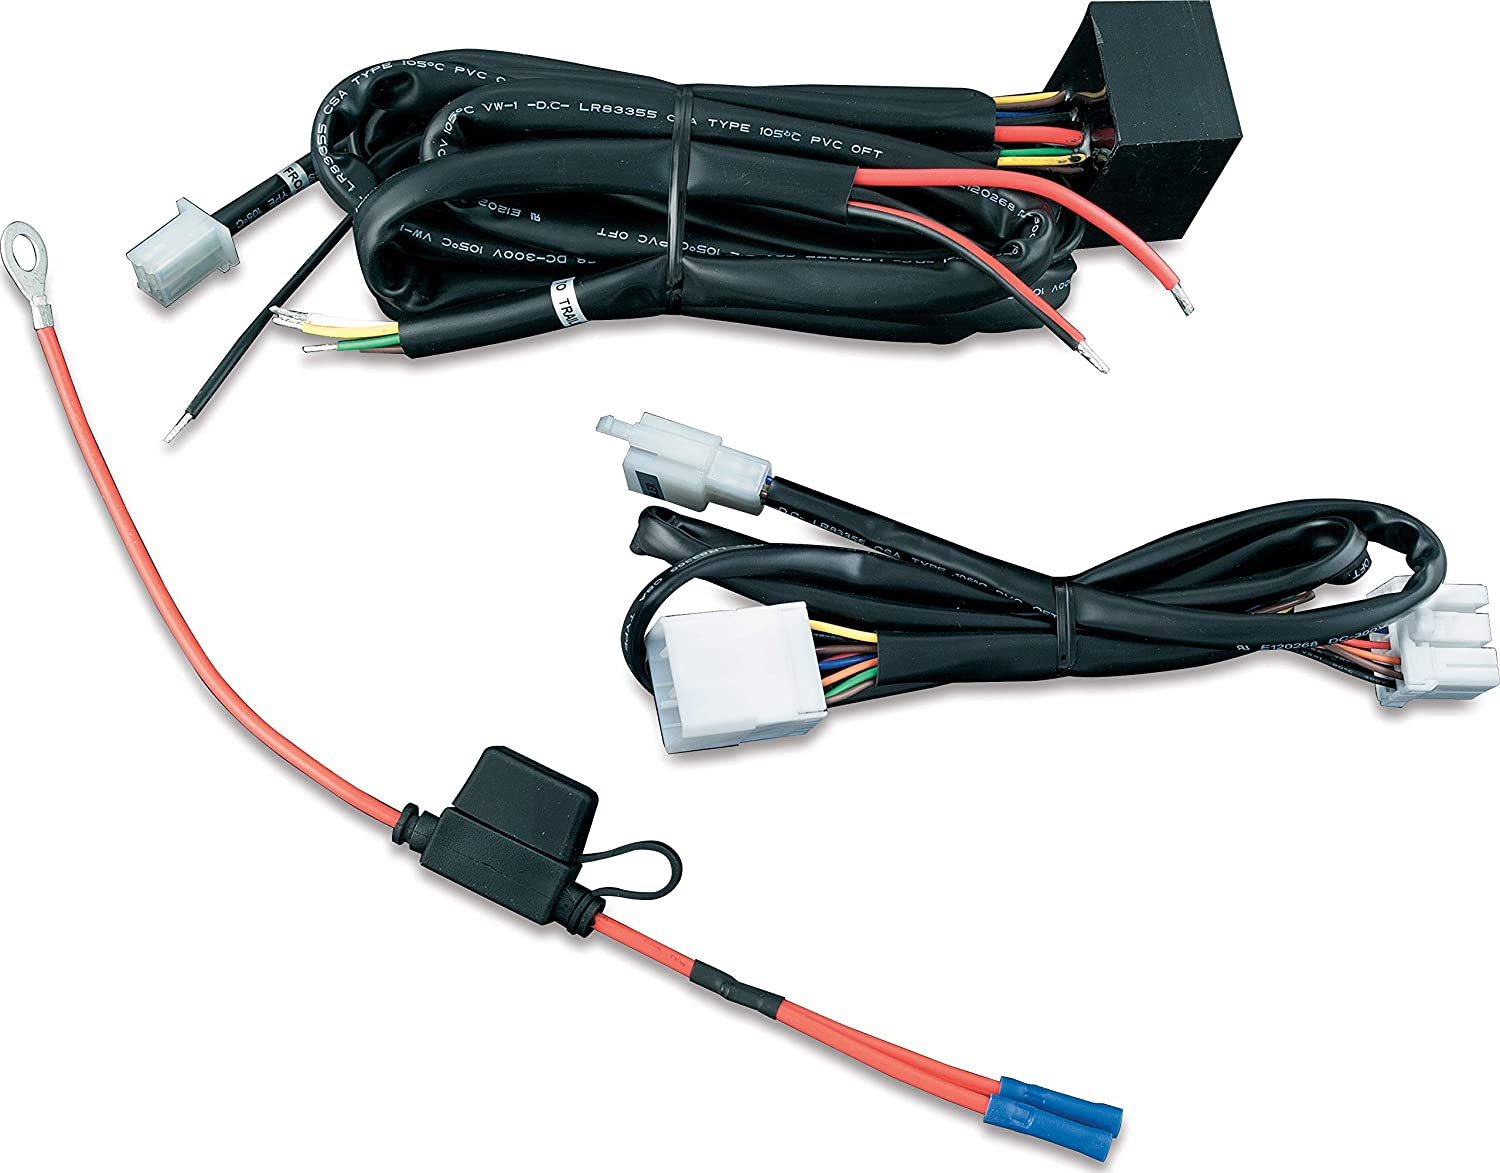 Amazon.com: Kuryakyn 7675 Motorcycle Accessory: 5 to 4 Wire Converter with 4 -Pin Flat Connector for Plug & Play Trailer Wiring Harness, Universal Fit:  Automotive   2015 Flhtcu 4 Pin Wiring Harness      Amazon.com